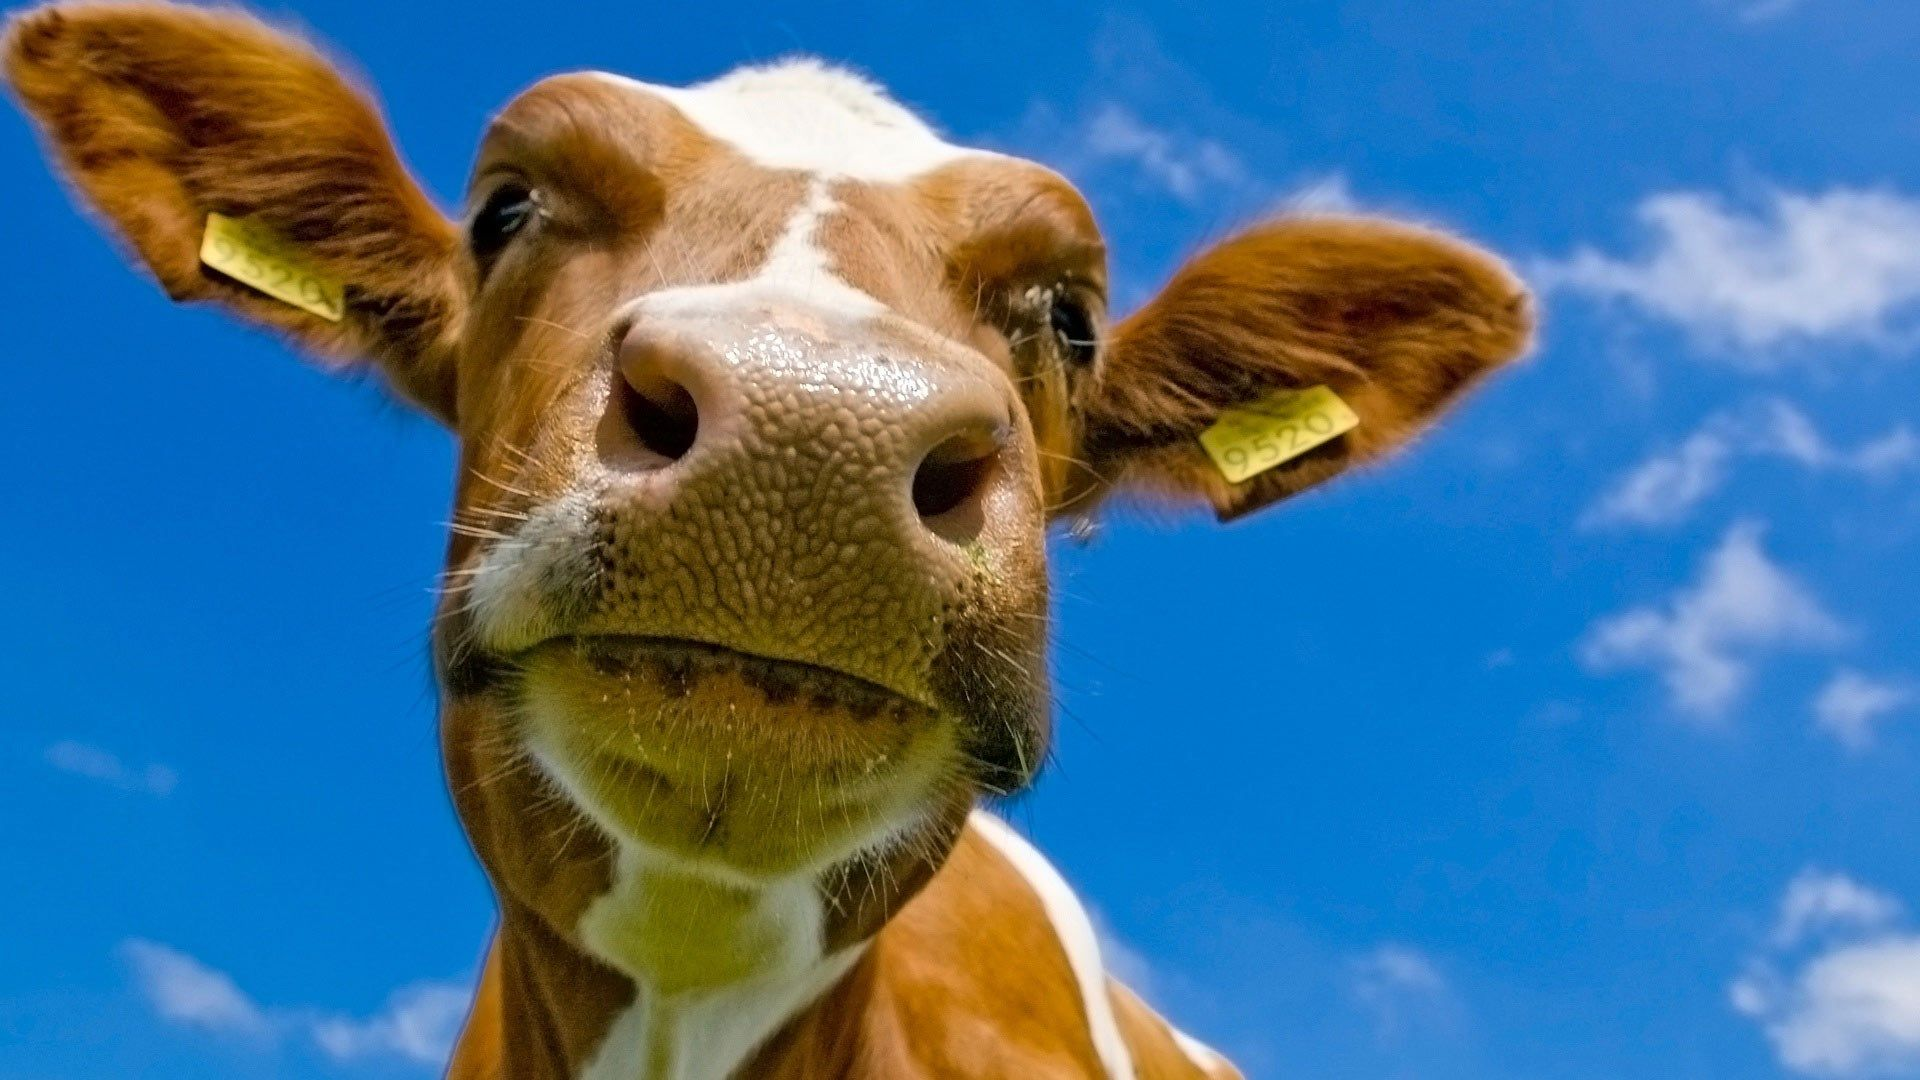 a picture of a cow